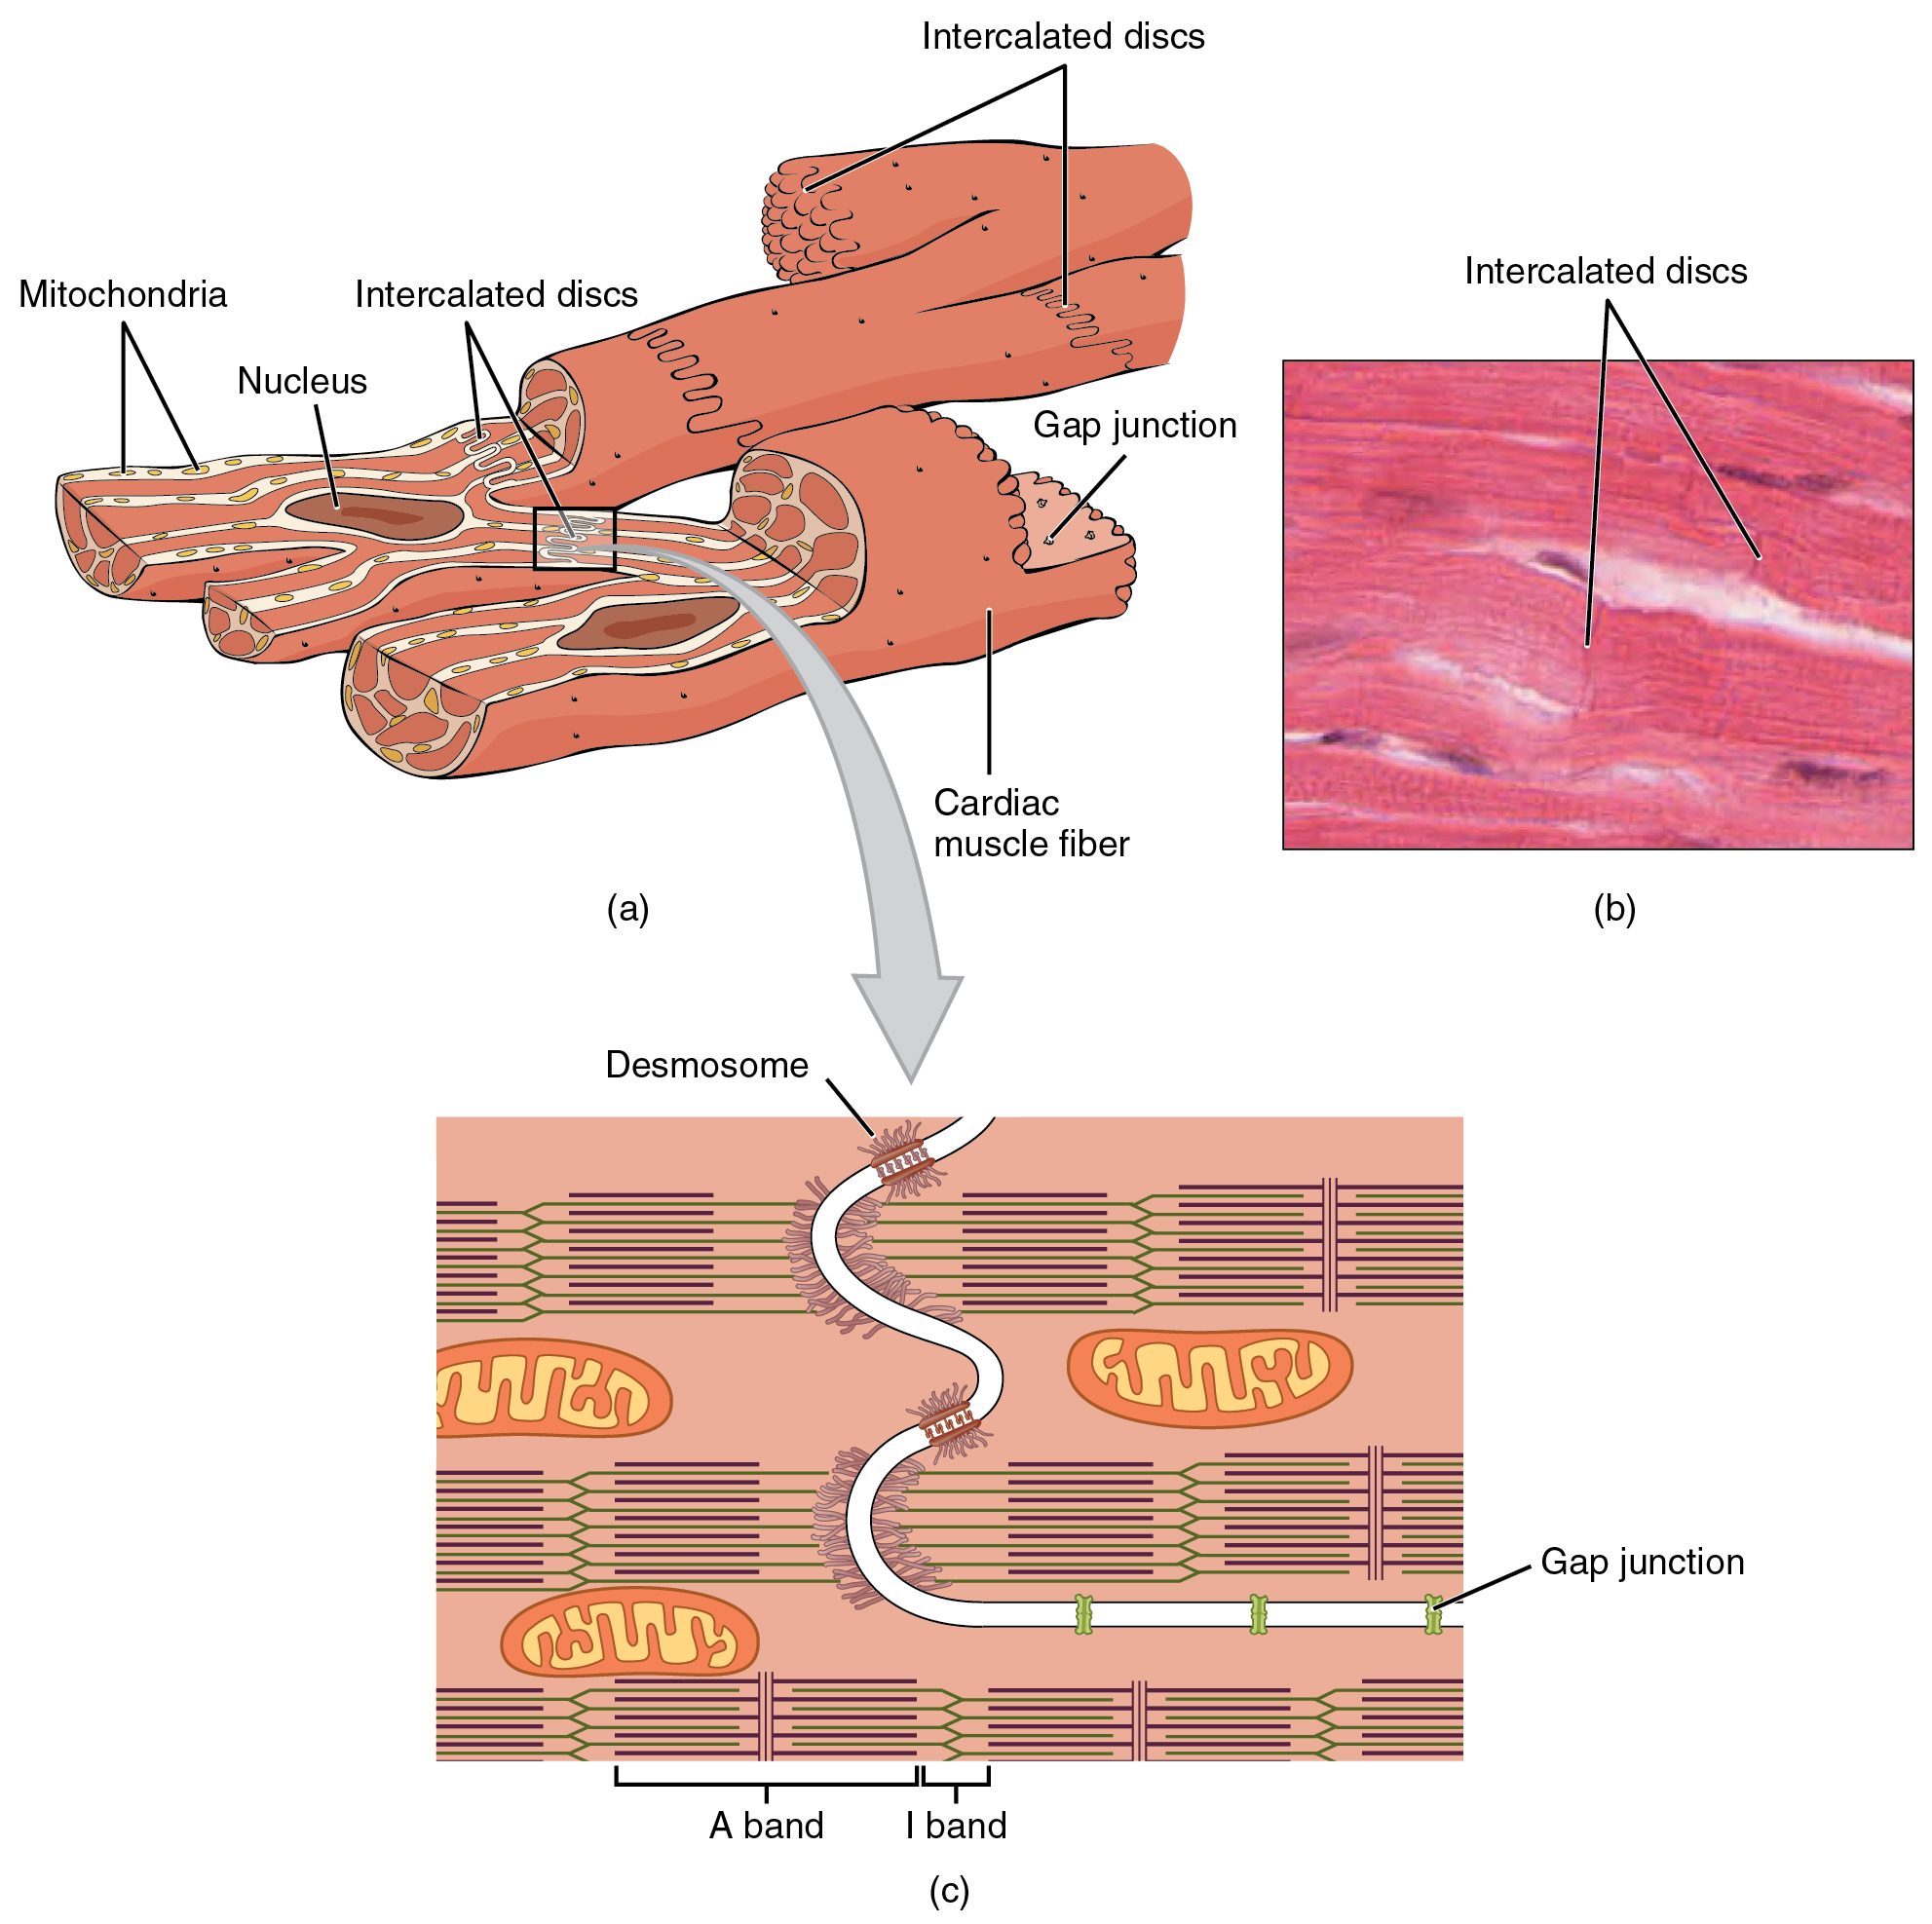 The top left panel of this figure shows the cross structure of cardiac muscle with the major parts labeled. The top right panel shows a micrograph of cardiac muscle. The bottom panel shows the structure of intercalated discs.